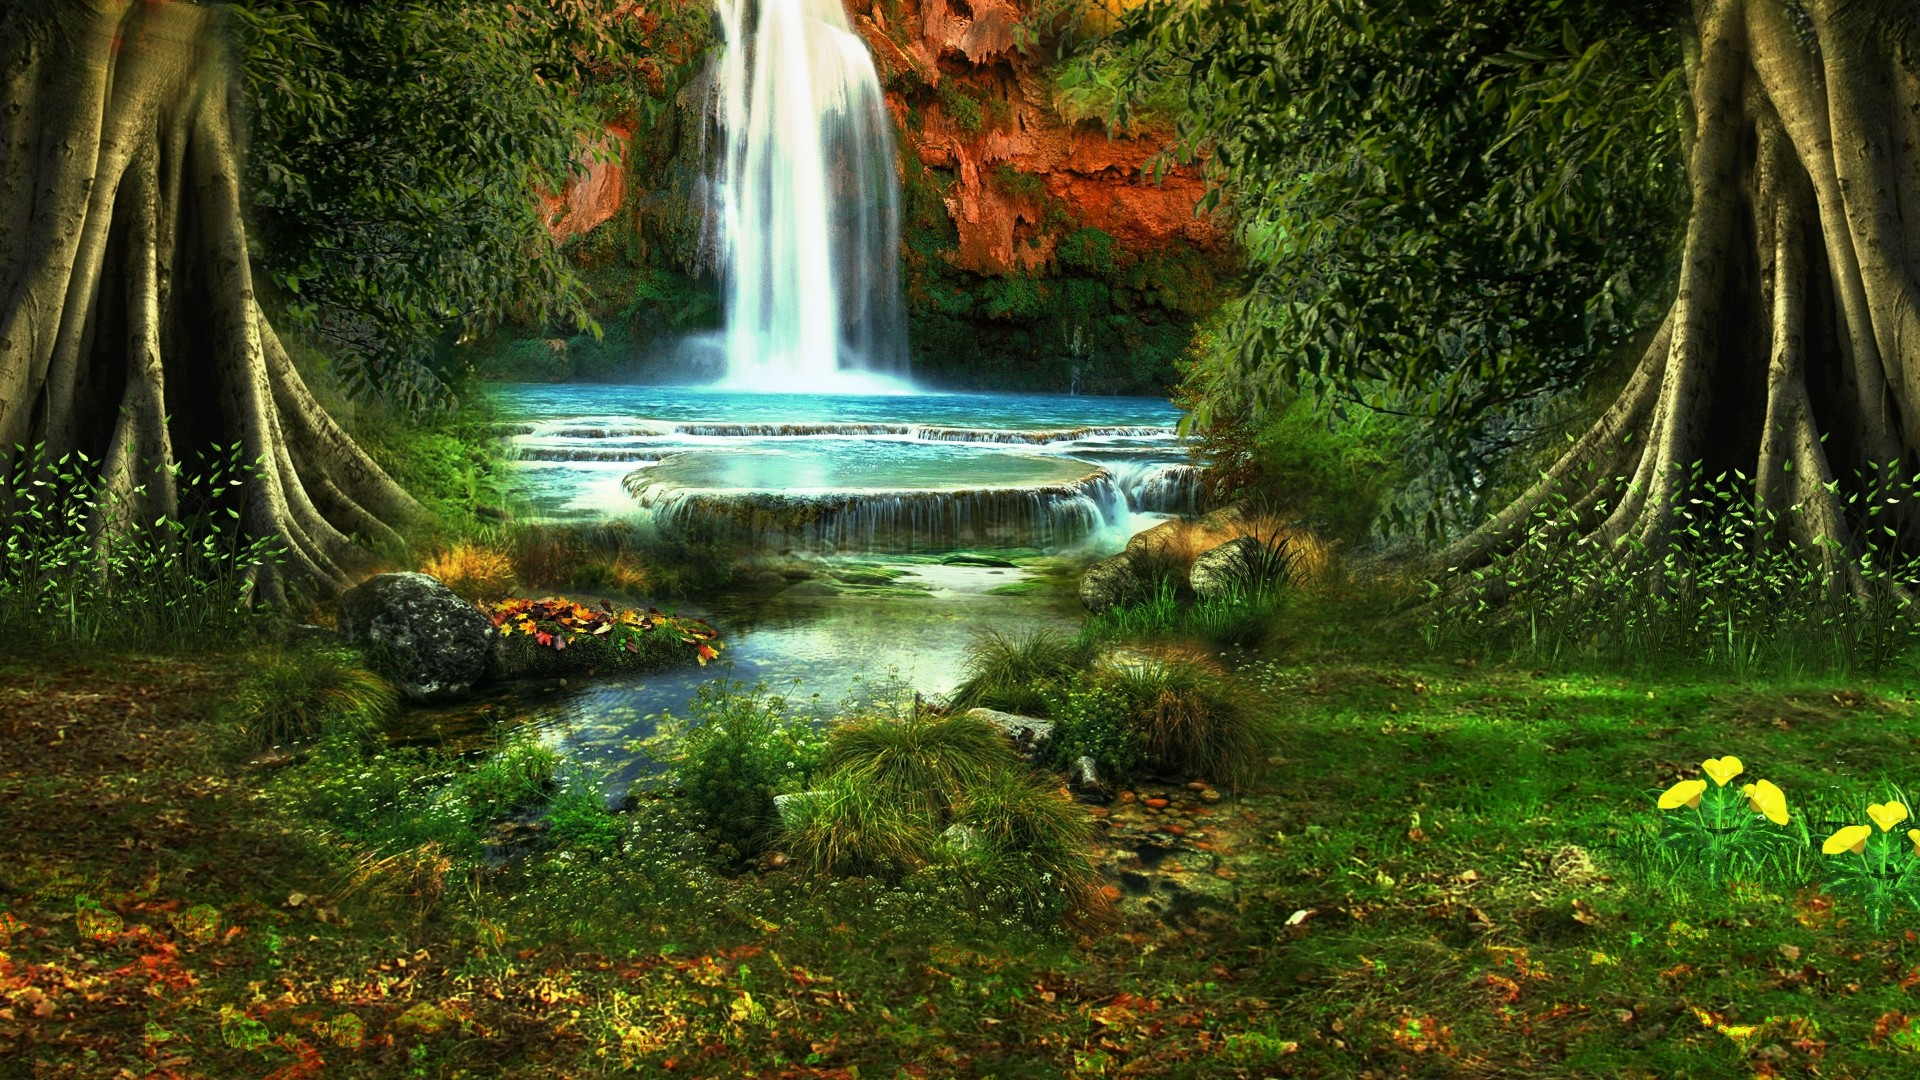 1920x1080 Download Wallpaper  waterfall, trees, vegetation, nature, landscape  Full HD 1080p HD Background